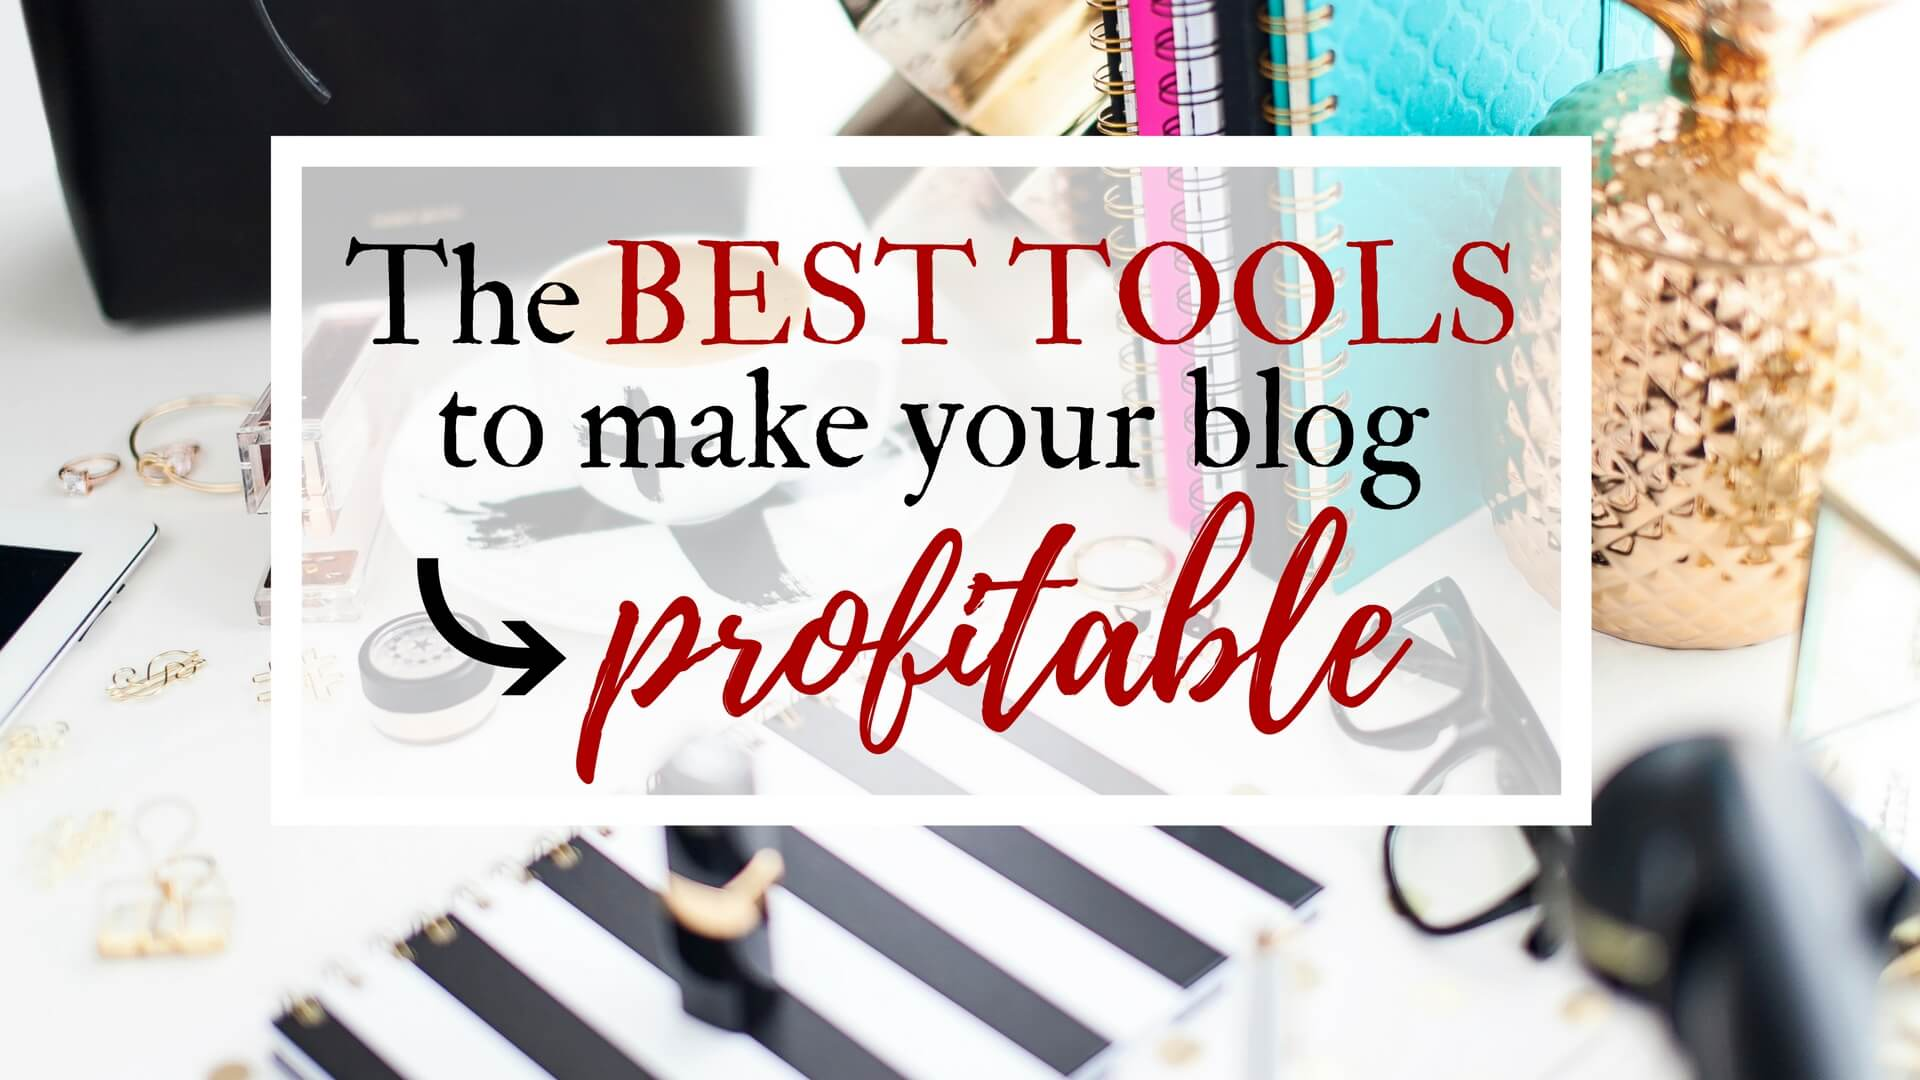 Best blogging tools and resources to make money blogging